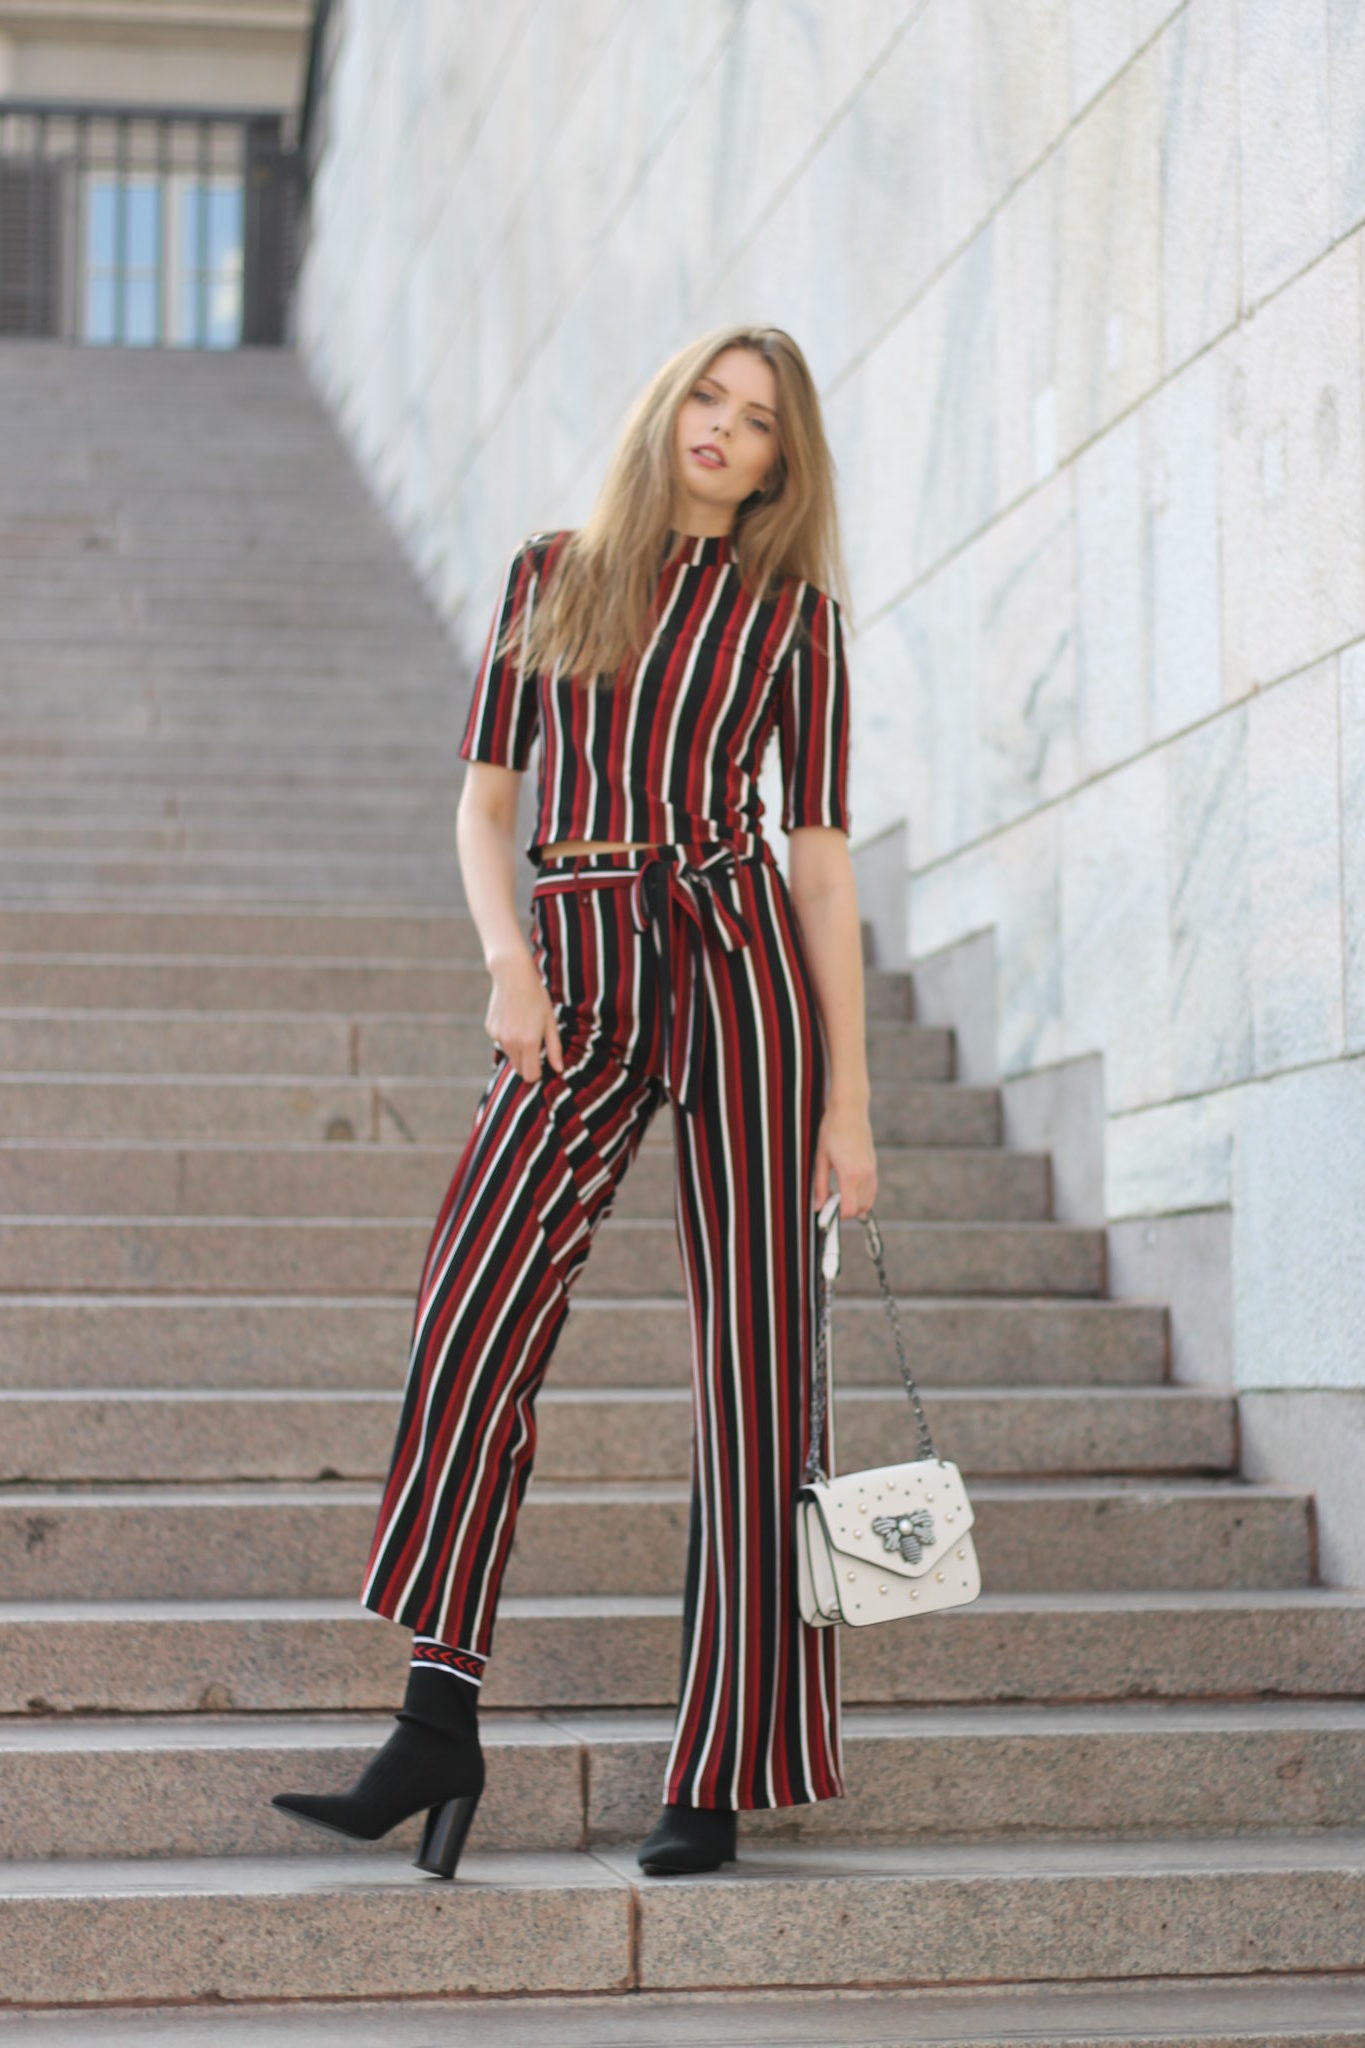 IMG 1764 e1519230650387 - BOLD STRIPED JUMPSUIT I MILAN